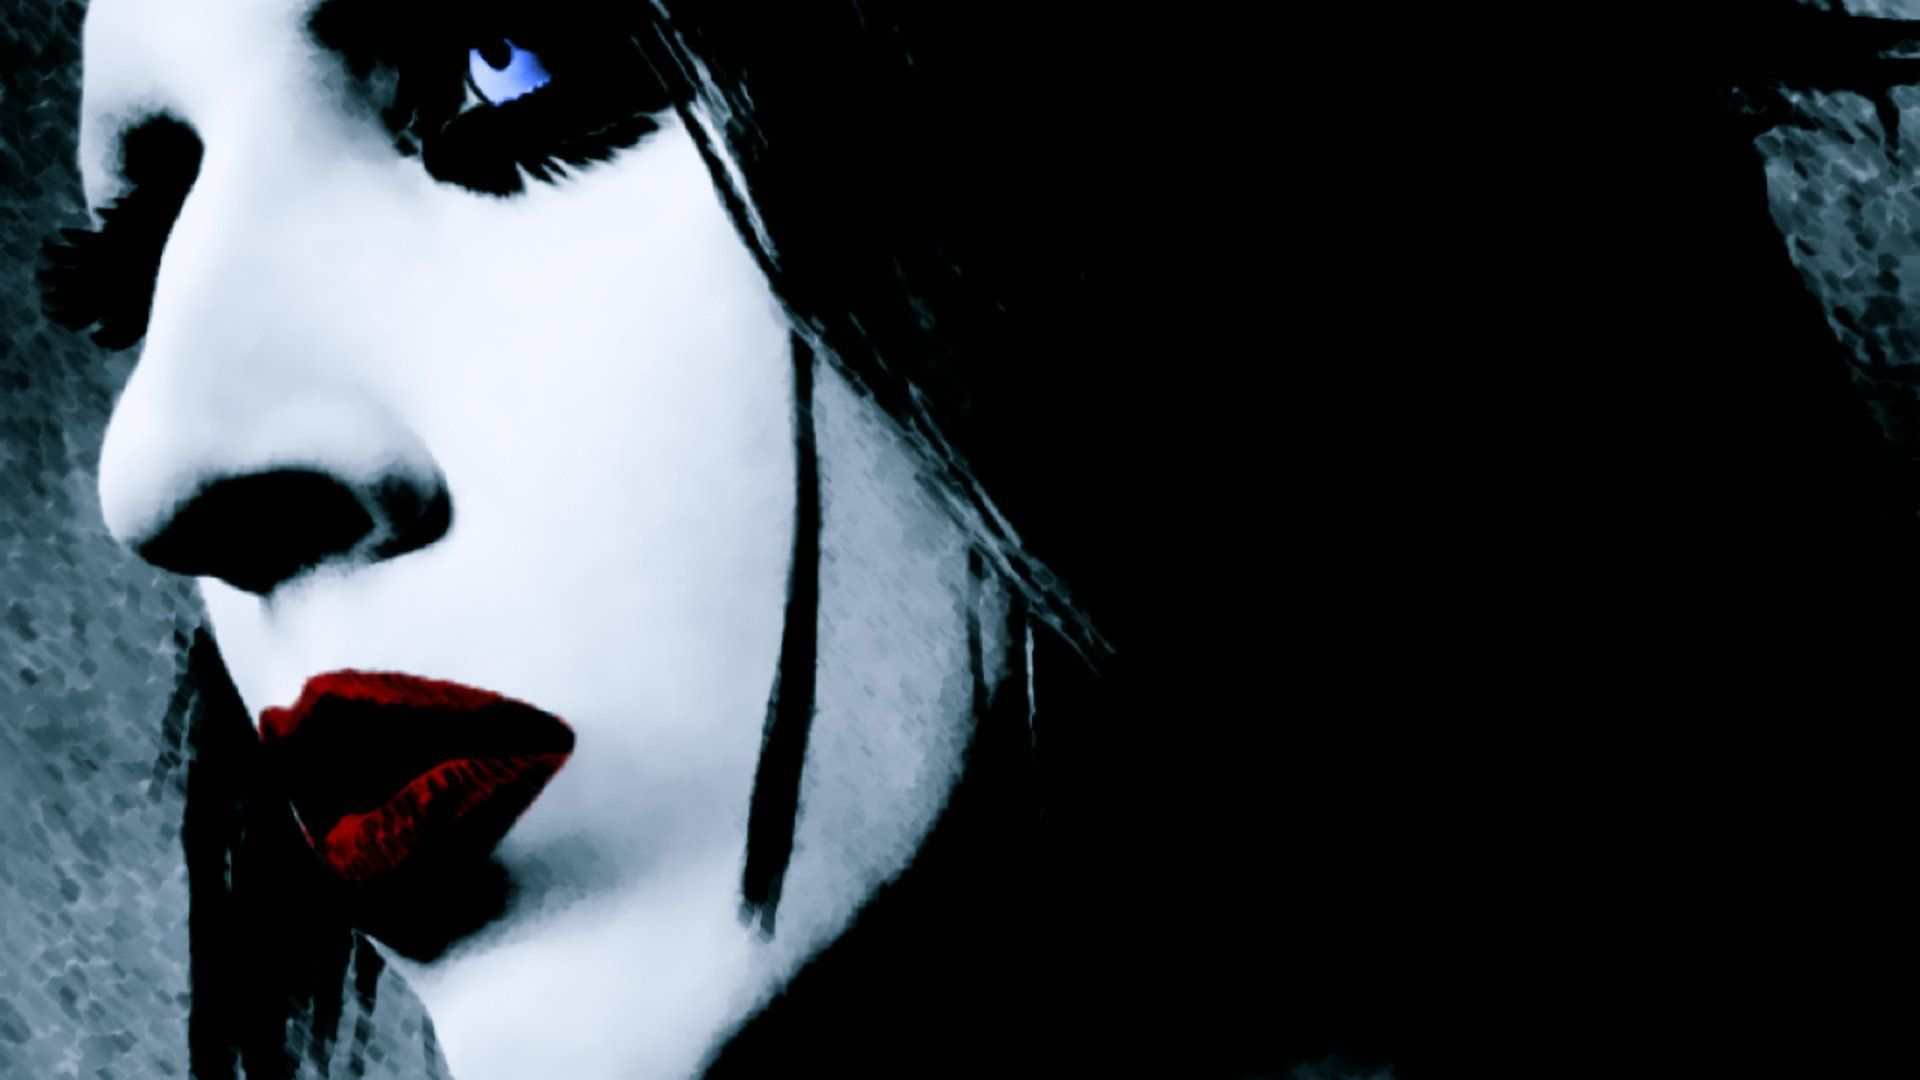 Hd Quality Marilyn Manson Wallpaper Widescreen 9 Music